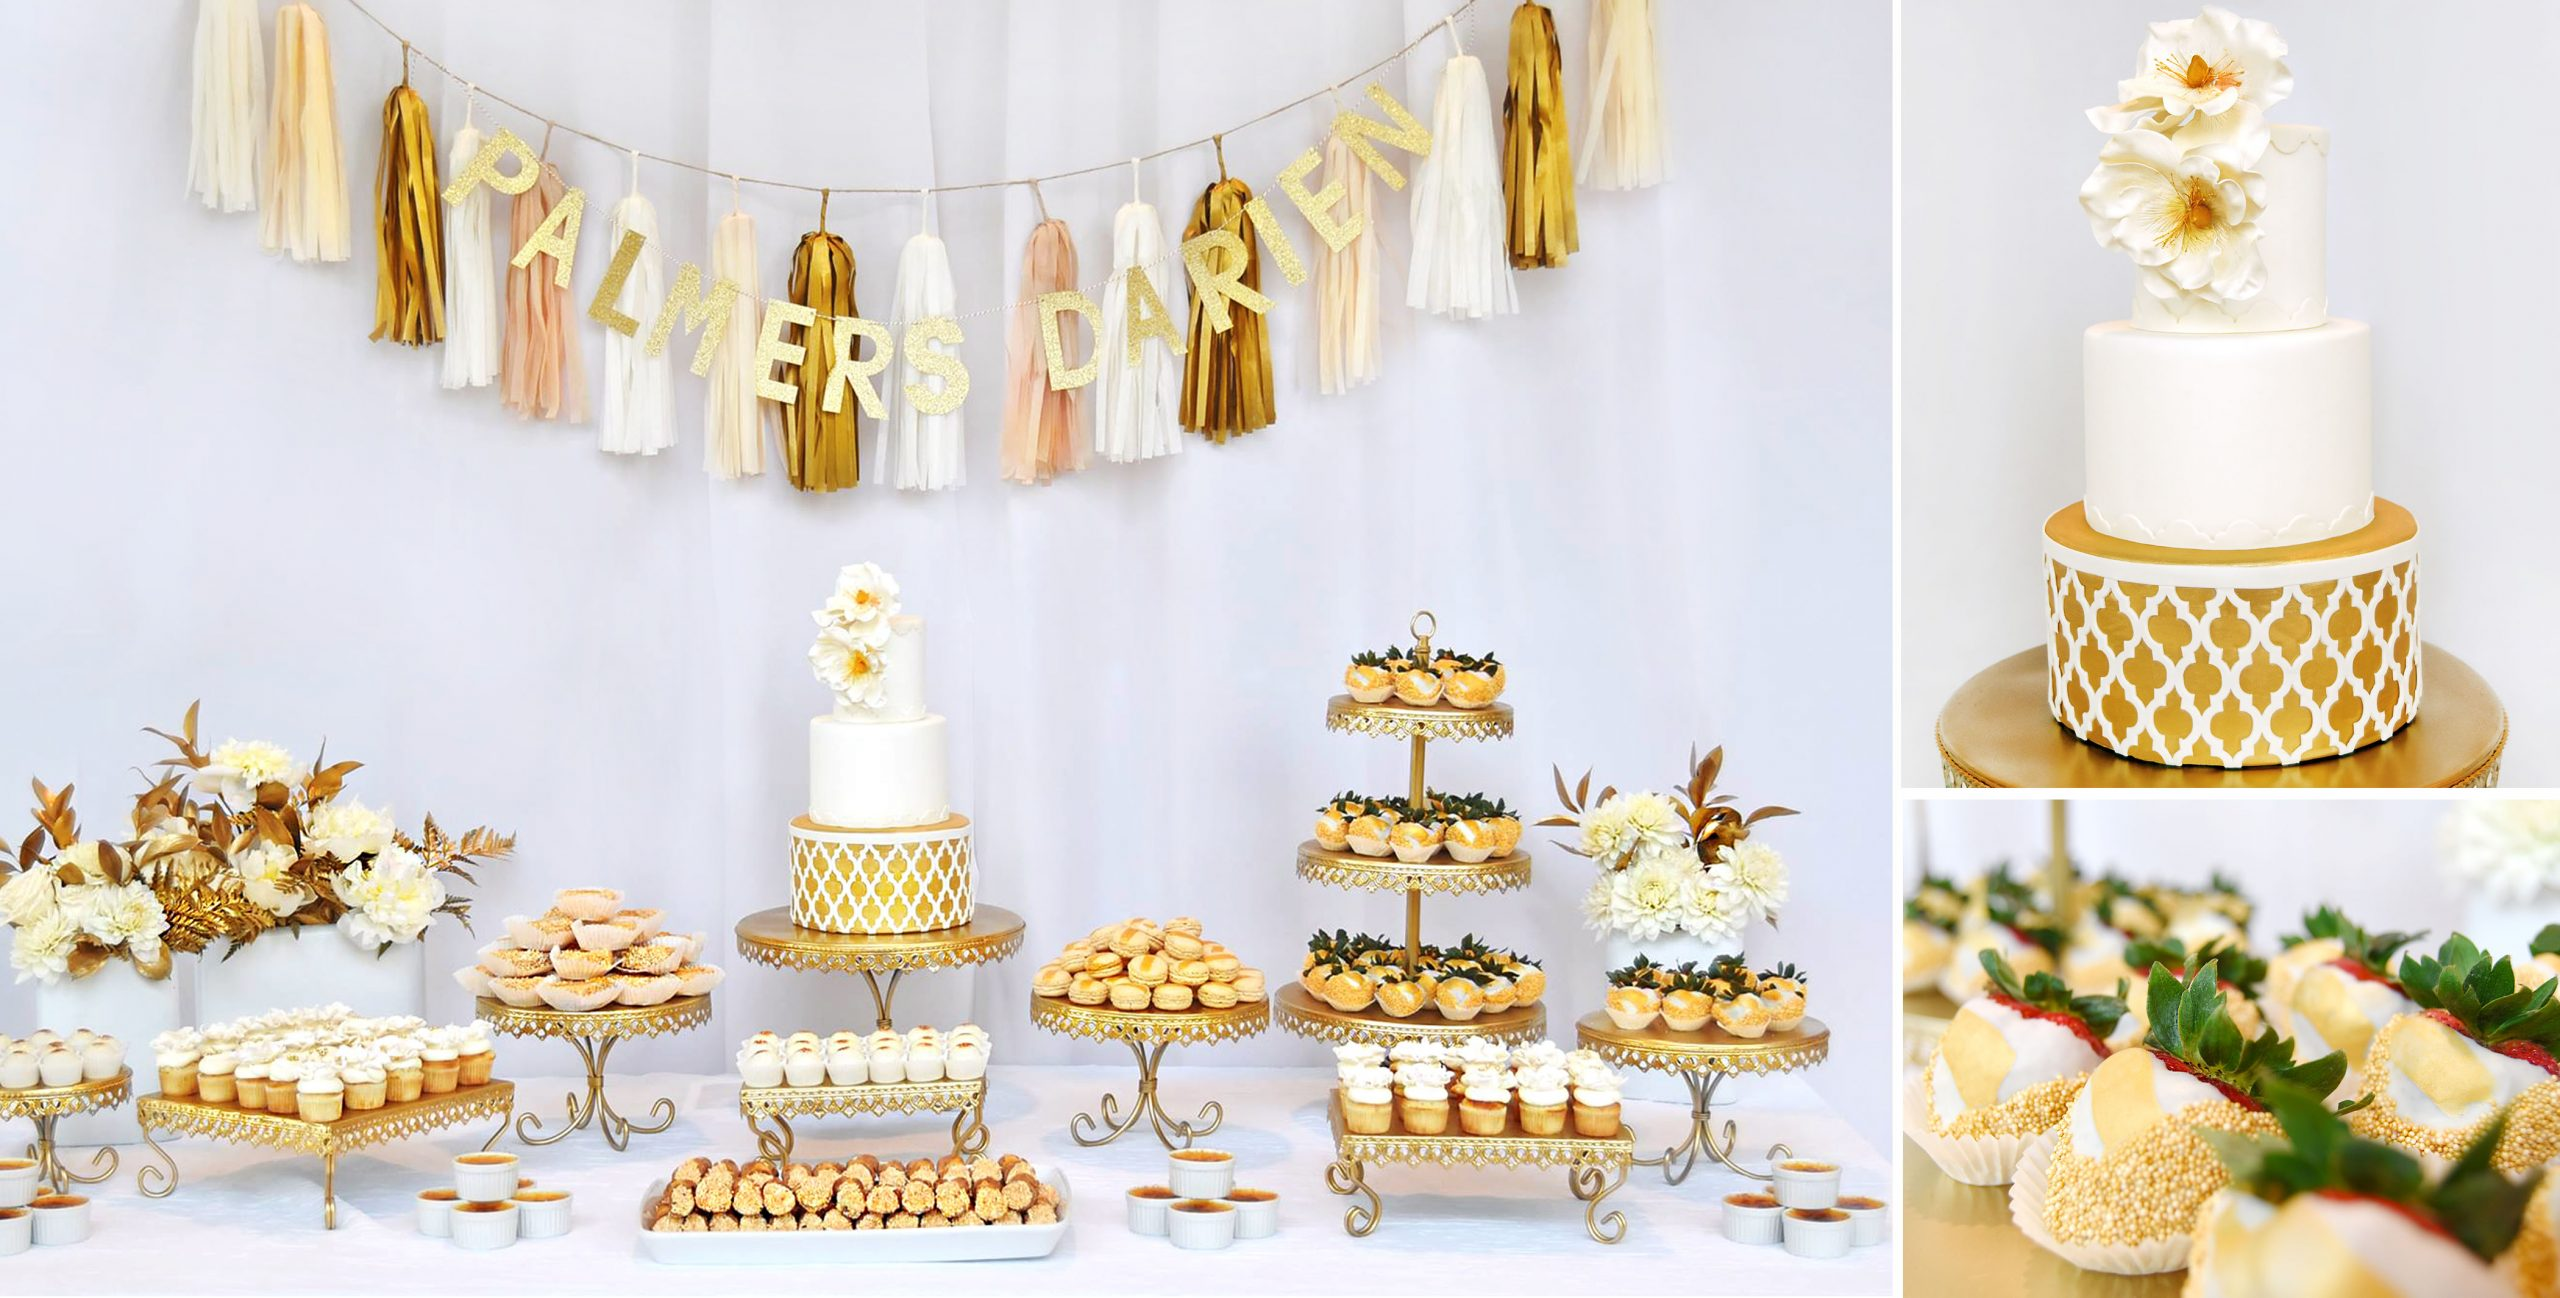 Palmer's Bakery - White and Gold Dessert Bar